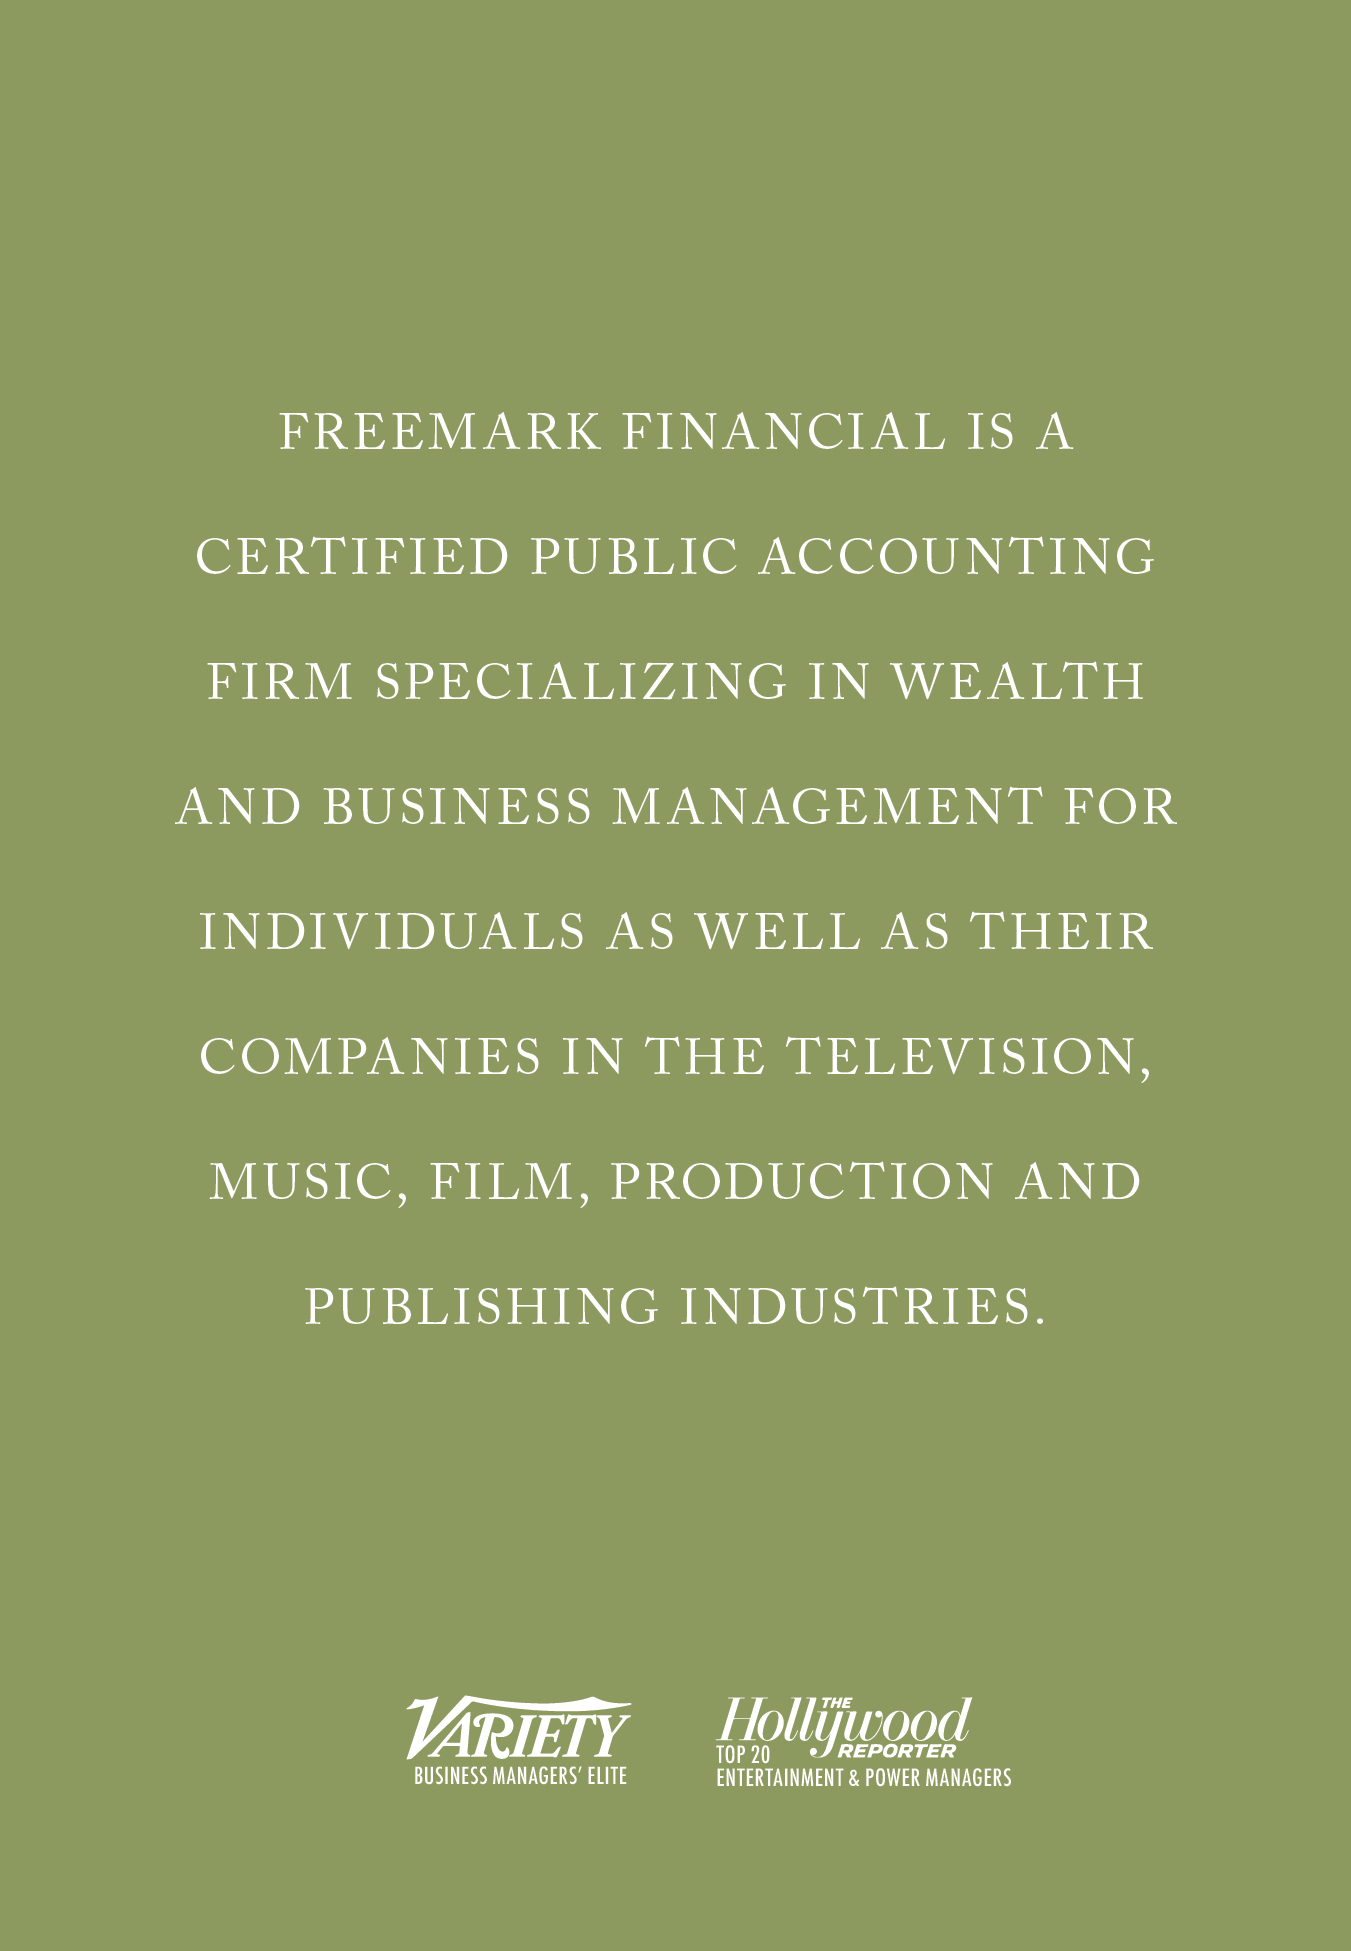 Freemark Financial Branded Content Recruitment